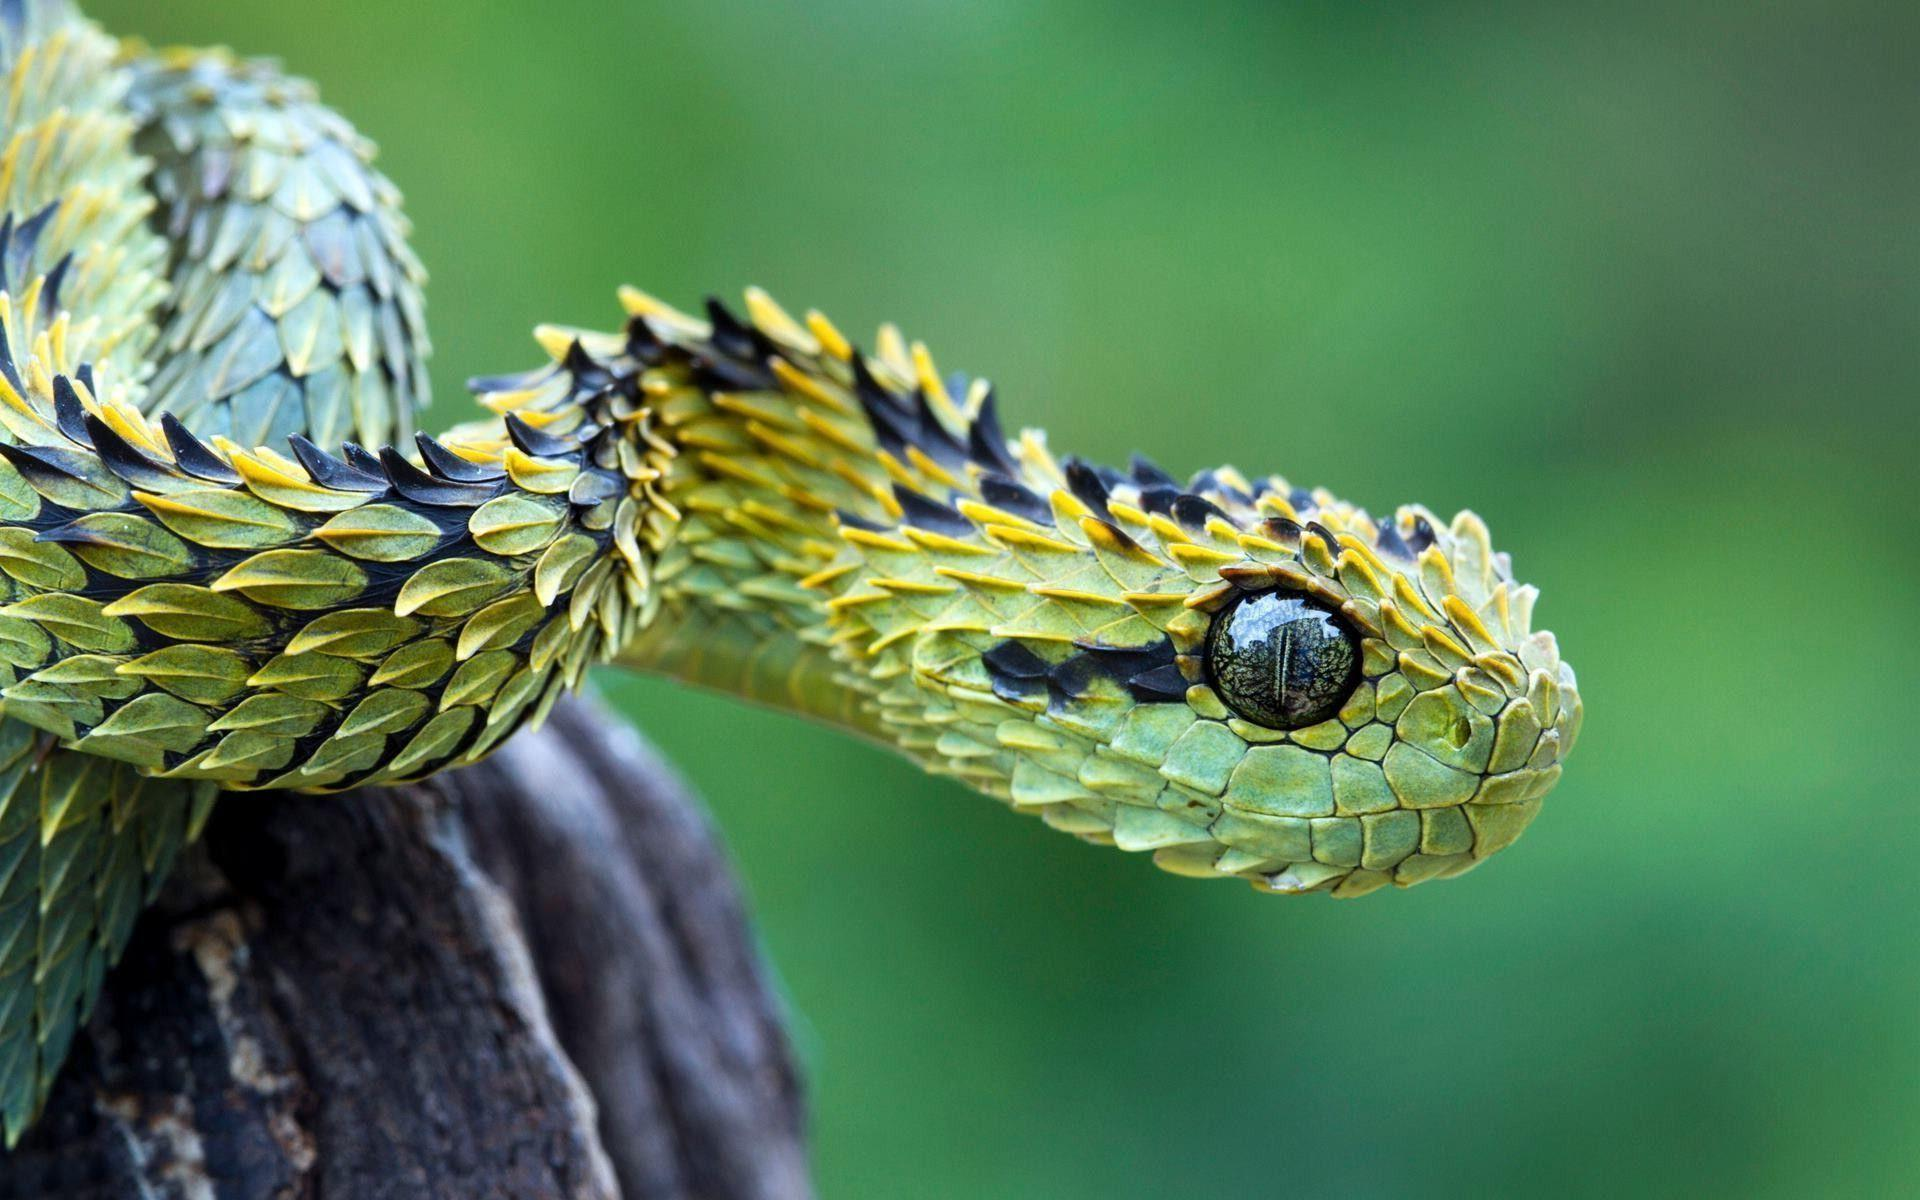 Bush viper snake Wallpapers